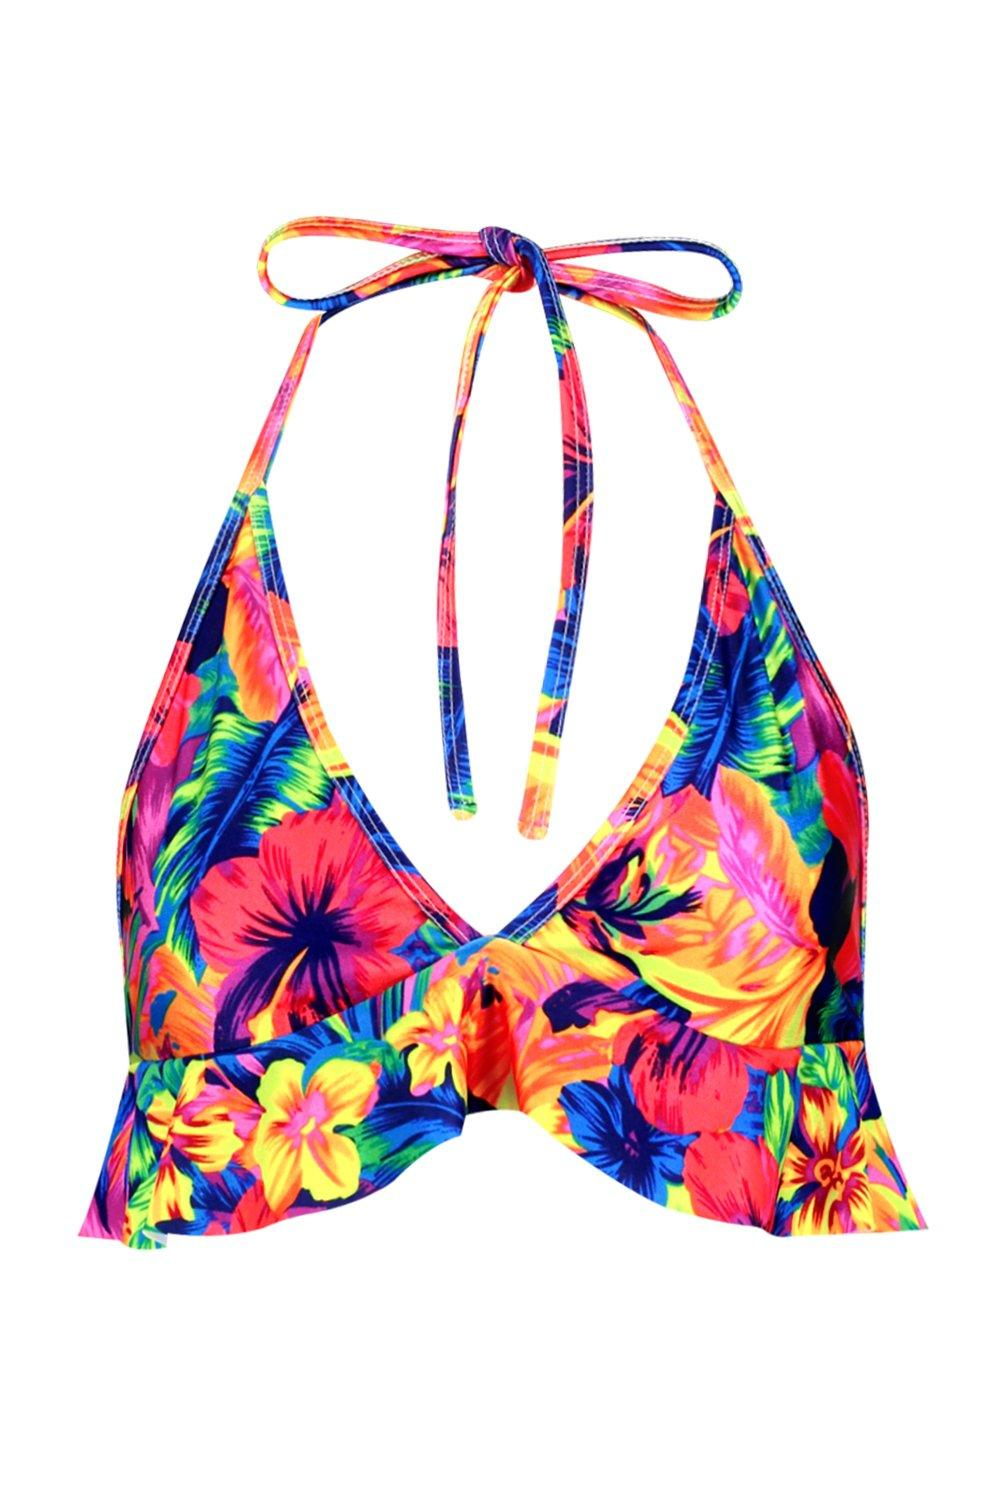 Bikini Top blue Ruffle amp; Mix Aruba Match Tropical COTpnwq